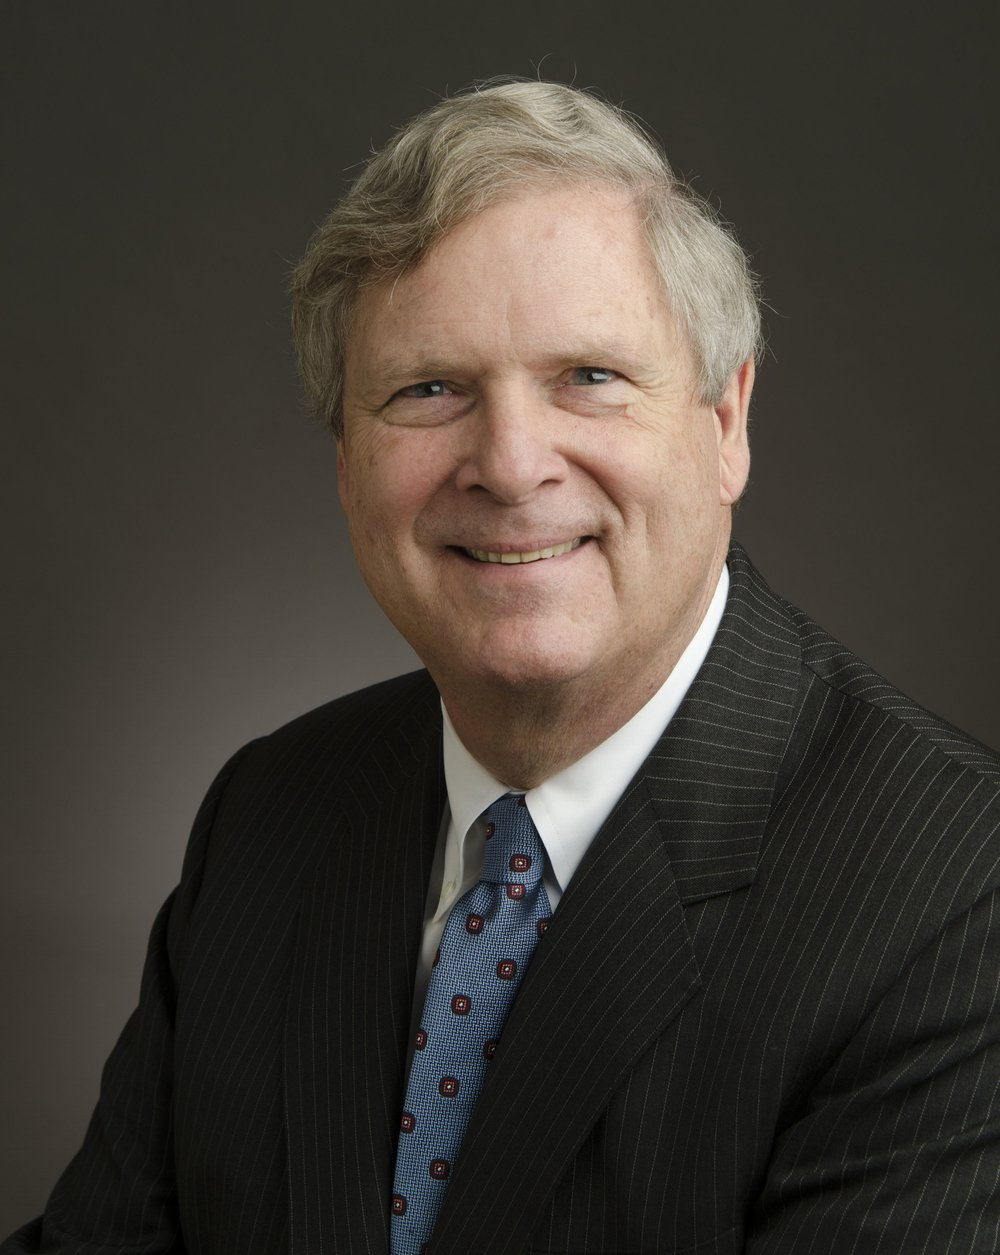 Tom Vilsack headshot 2.jpg